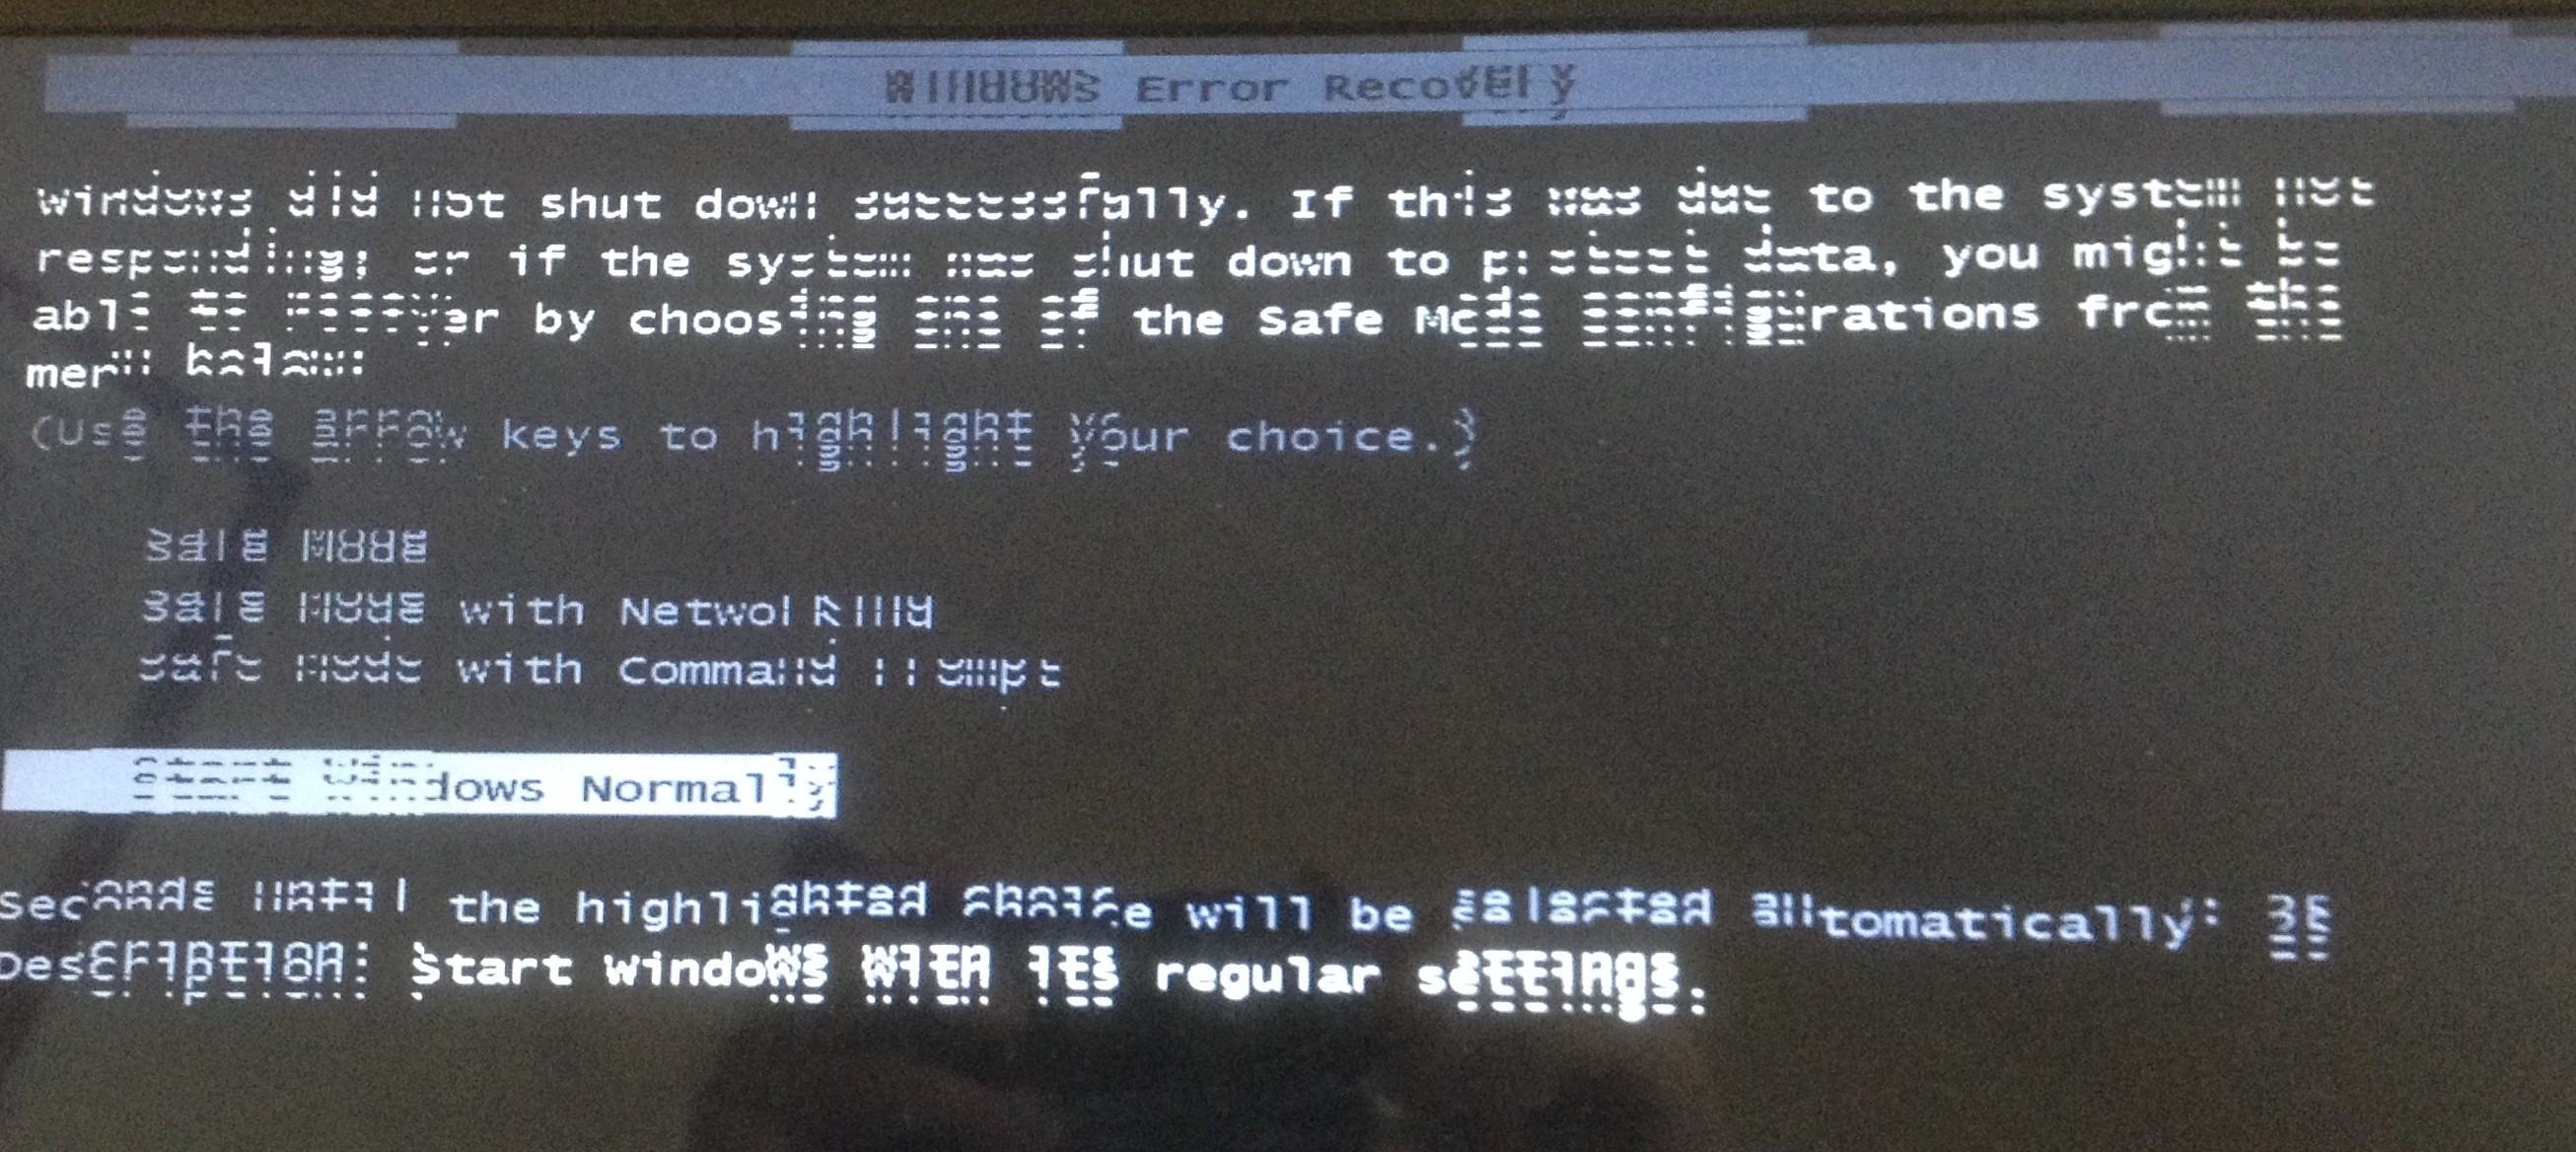 Horisontal stripes on BIOS/boot screen - HP Support